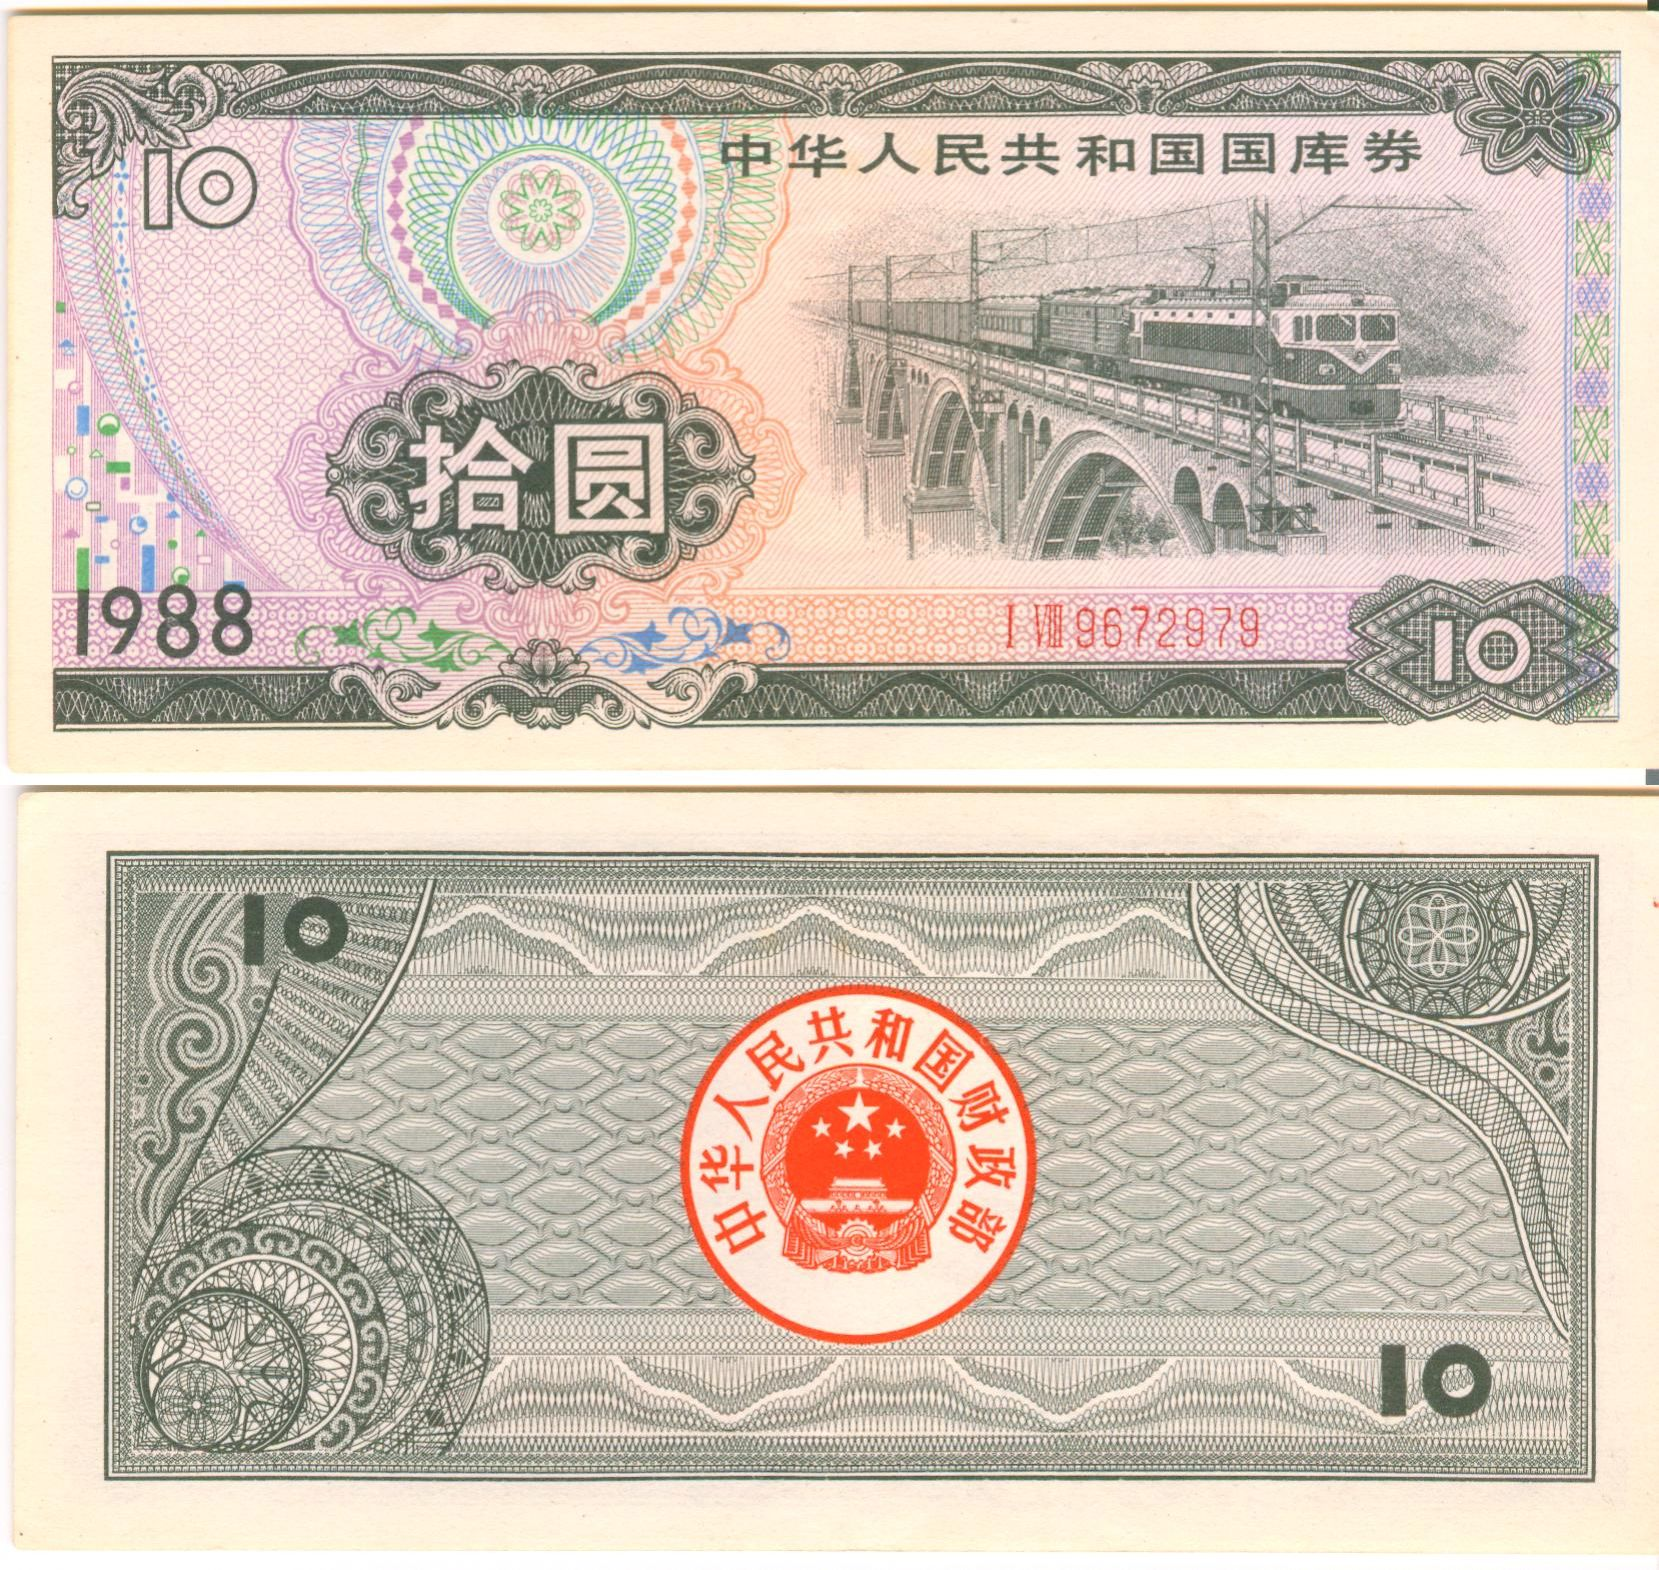 B7063, Treasury Bond of P.R.China, Ten Yuan (10 Dollars Loan) 1988